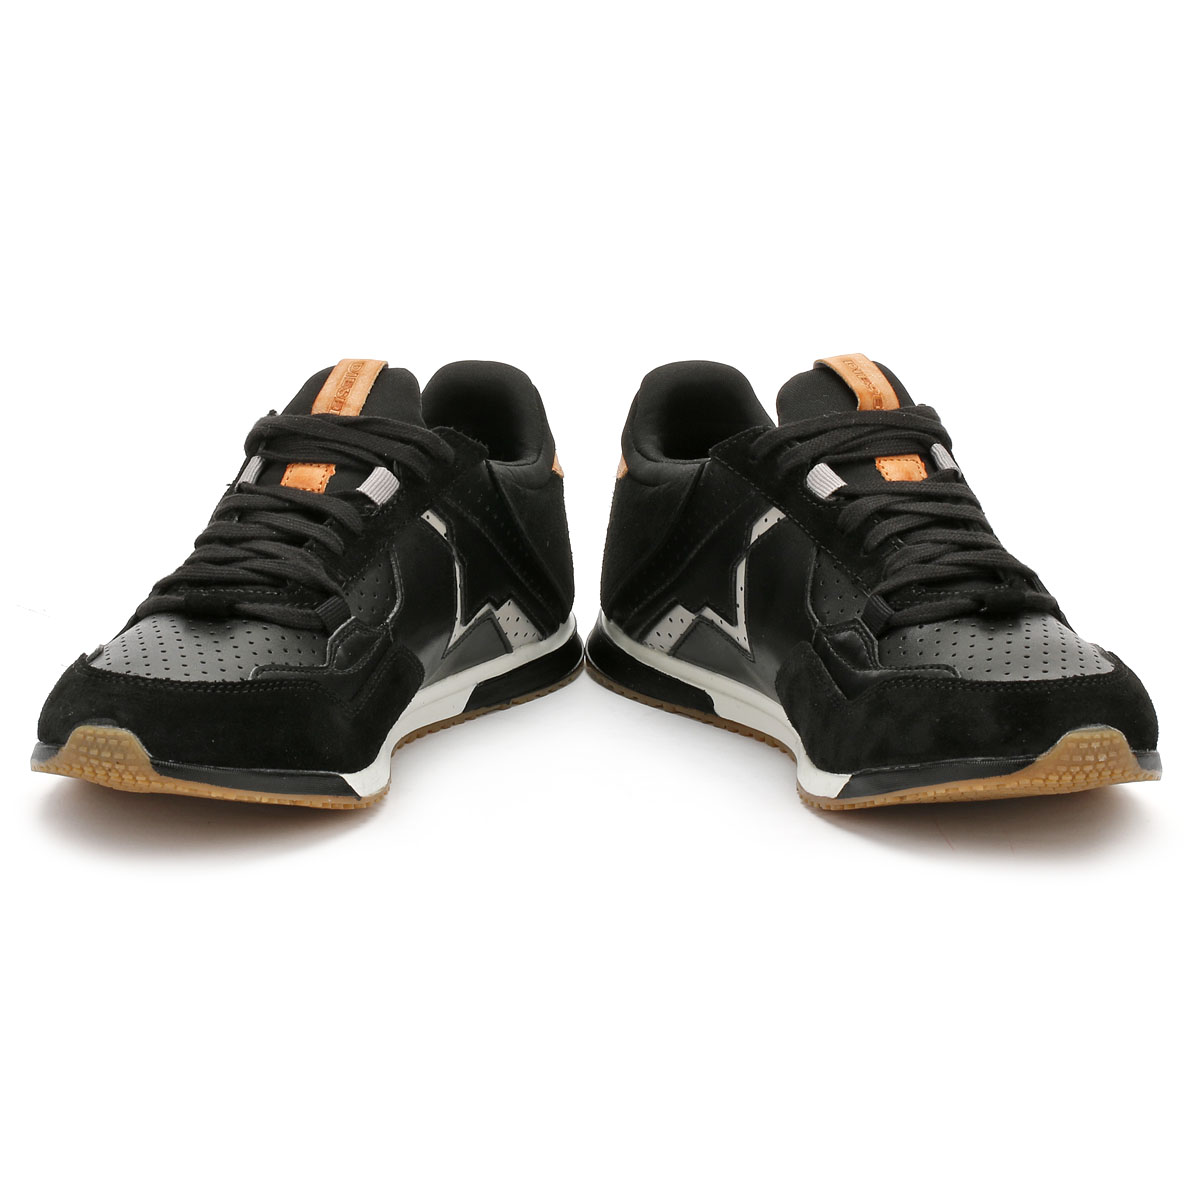 Diesel S-Furry sneakers outlet amazing price popular popular cheap online quality outlet store zryPLOwvm